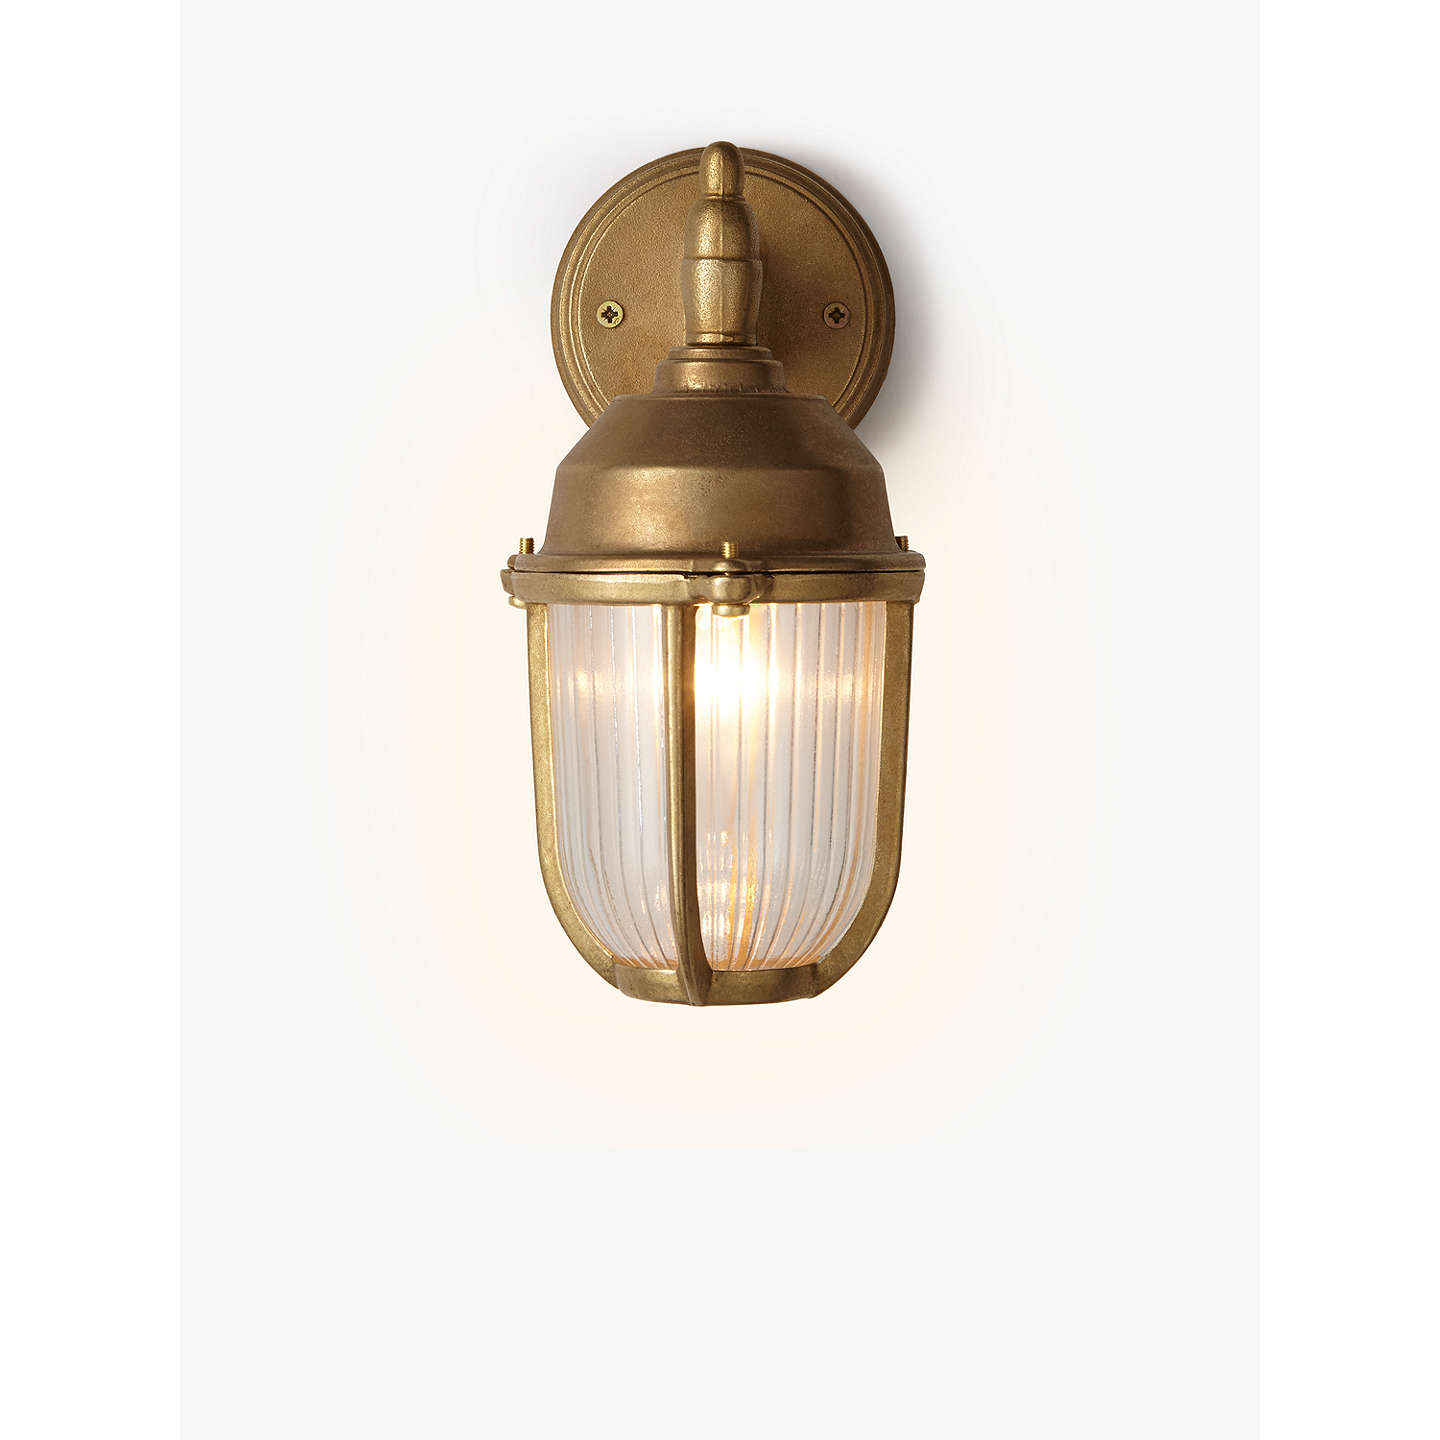 Nordlux outdoor downlight wall light brass at john lewis buynordlux outdoor downlight wall light brass online at johnlewis aloadofball Choice Image